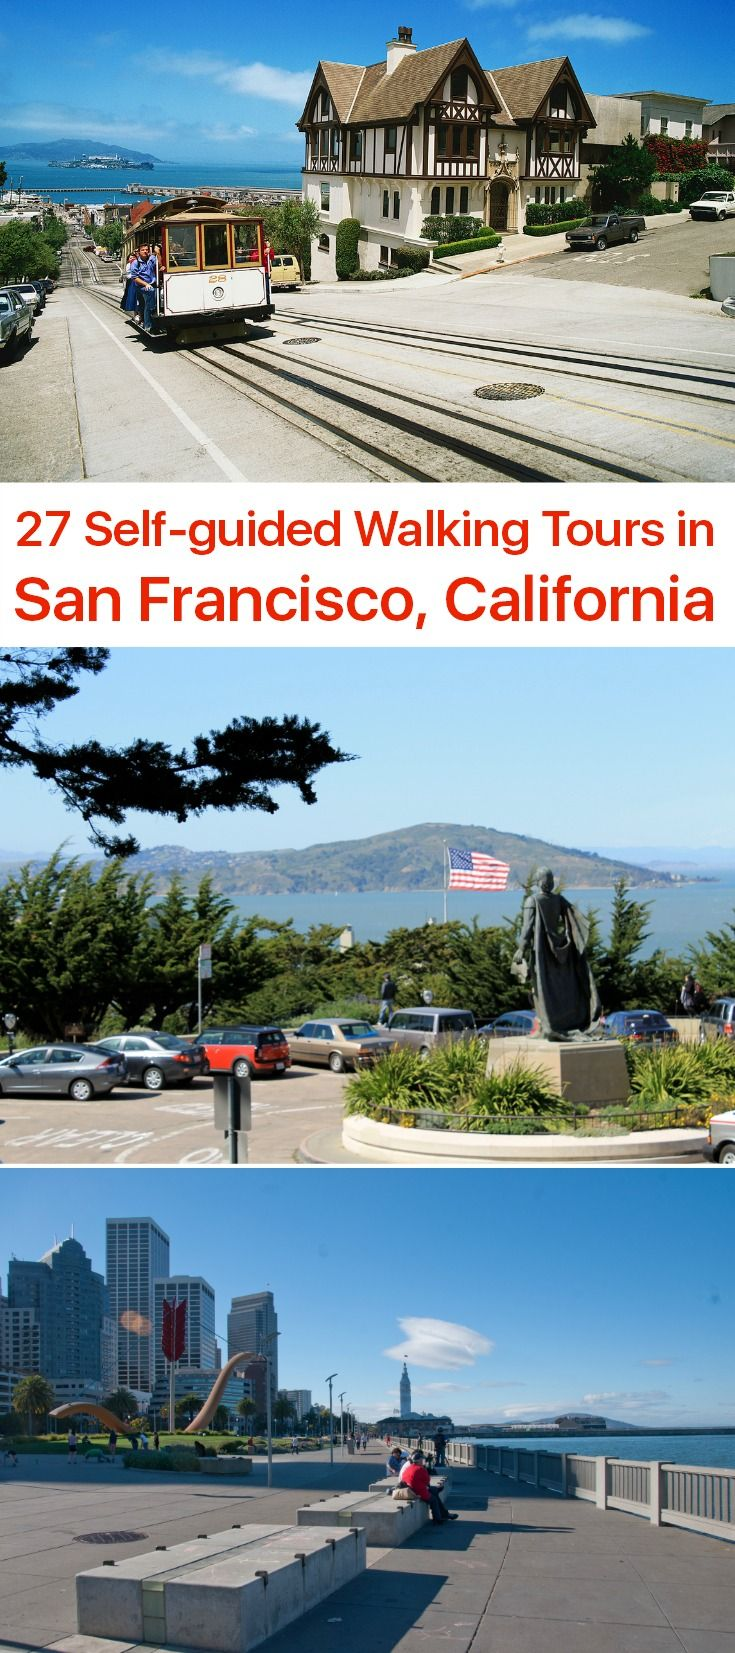 """With or without a """"flower in your head"""", you will find San Francisco equally enjoyable. Set on the hills overlooking the Pacific Ocean and San Francisco Bay, the capital of the 1960s sex revolution, Frisco is a home to a number of iconic landmarks, such as Golden Gate Bridge, Alcatraz, cable cars and more."""